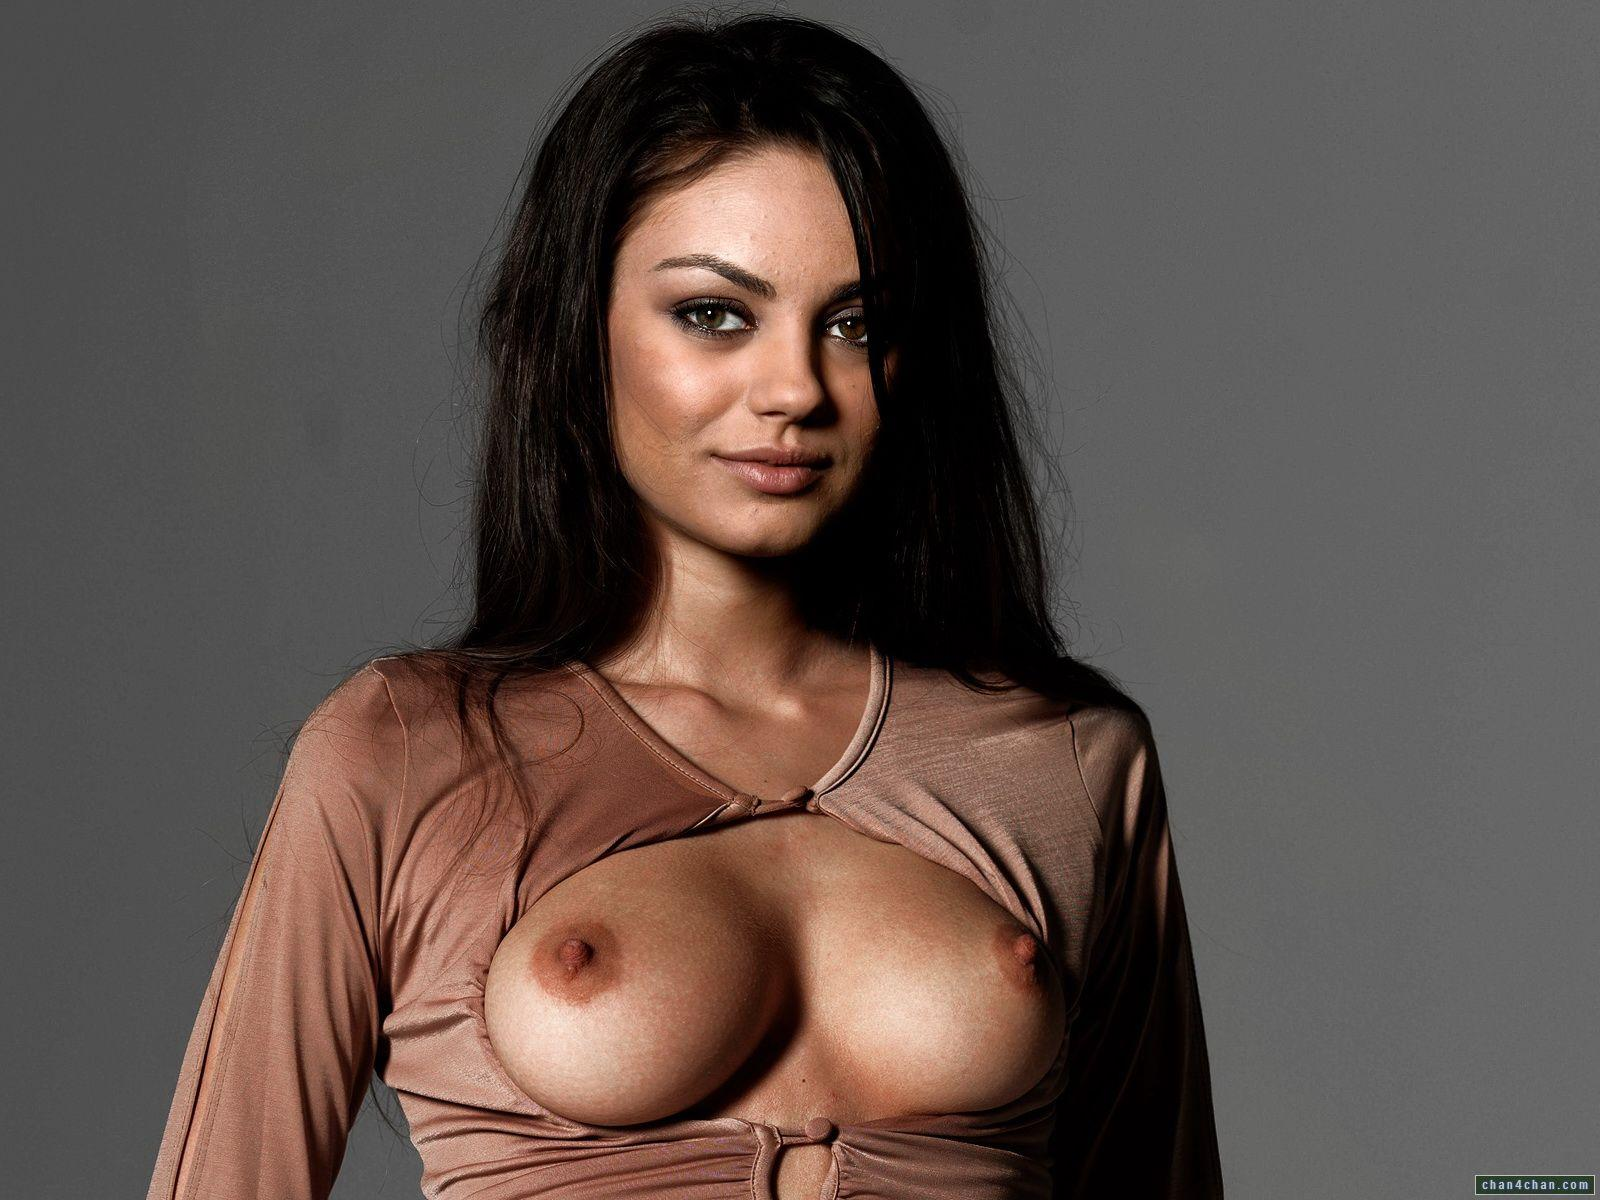 Agree, Mila kunis naked fucked